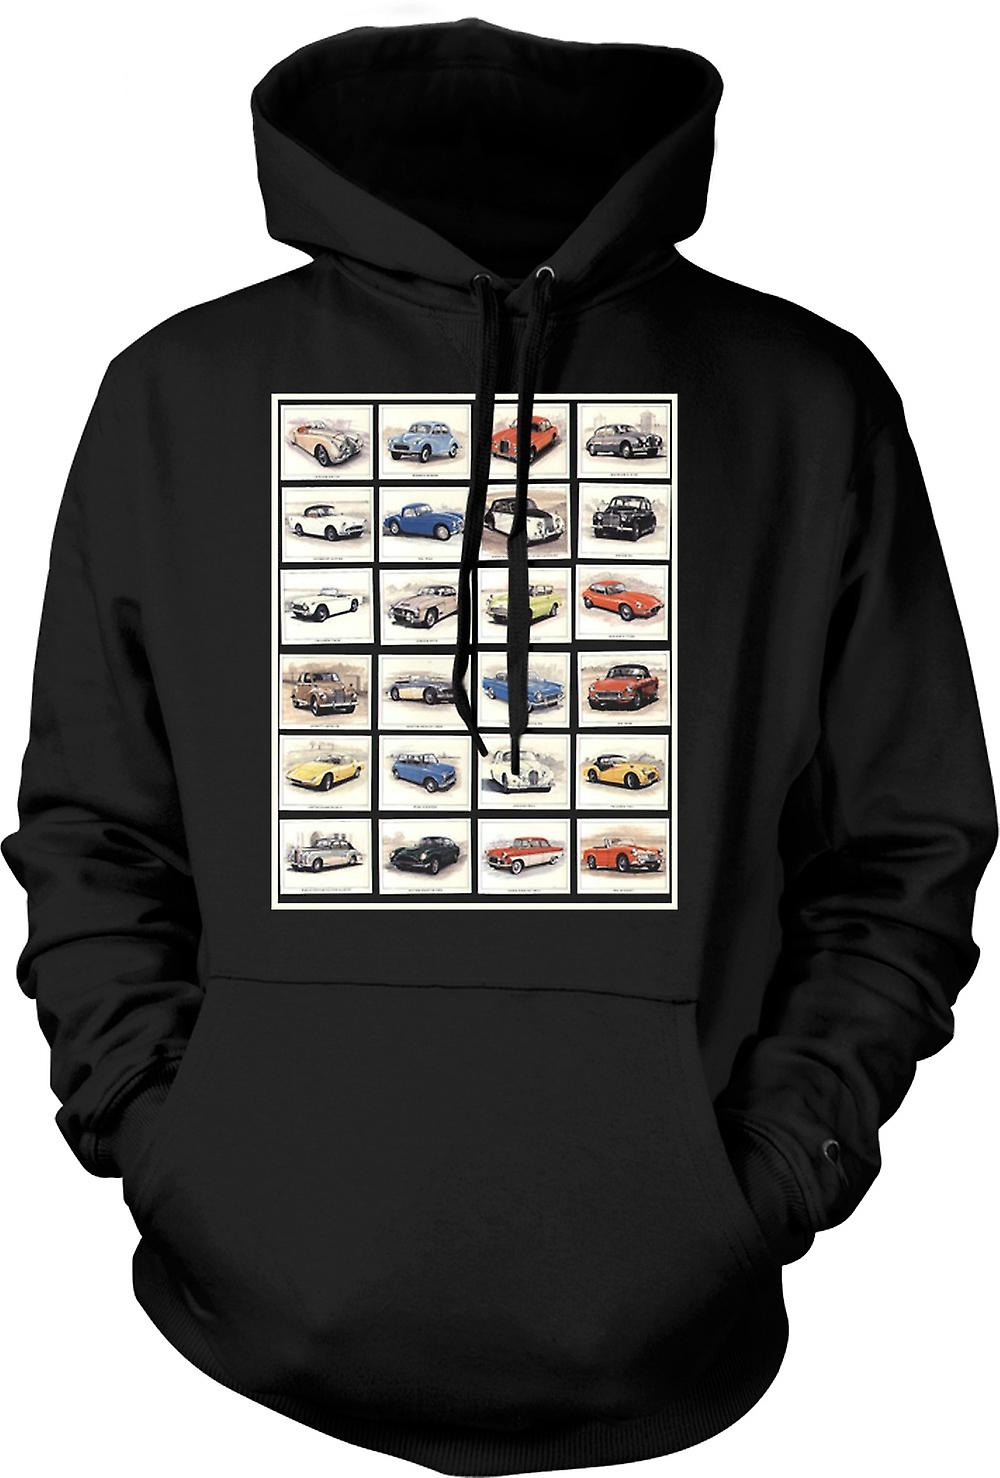 Kids Hoodie - Classic Motor Car Collage - Poster